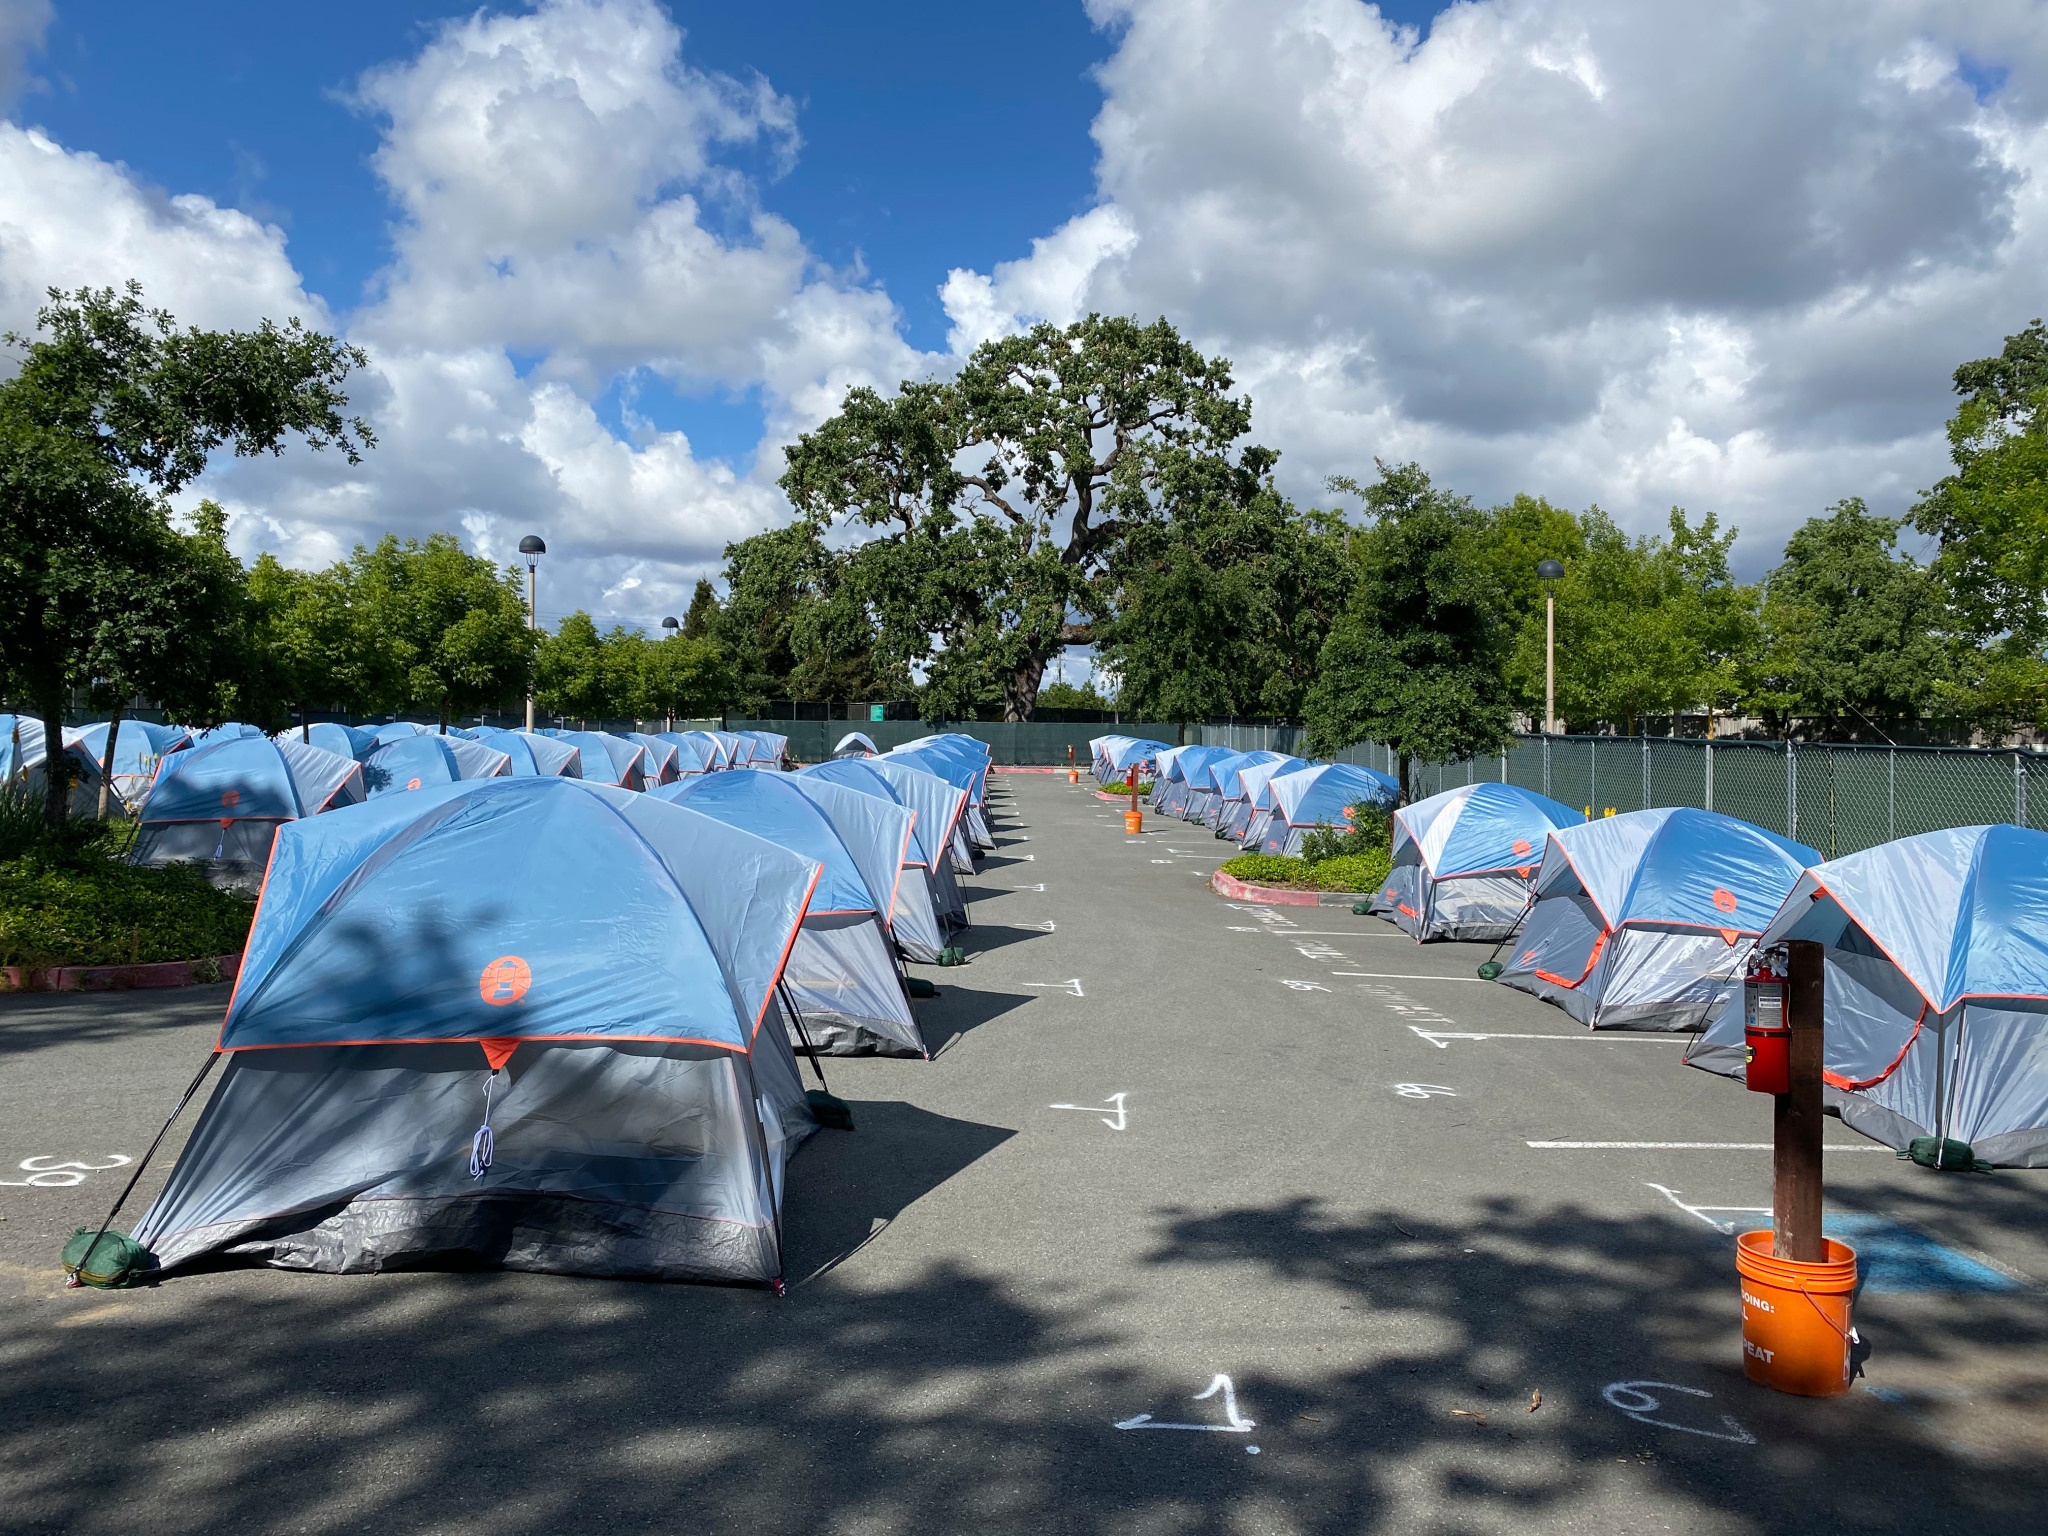 The Sonoma County town that embraced its tent city